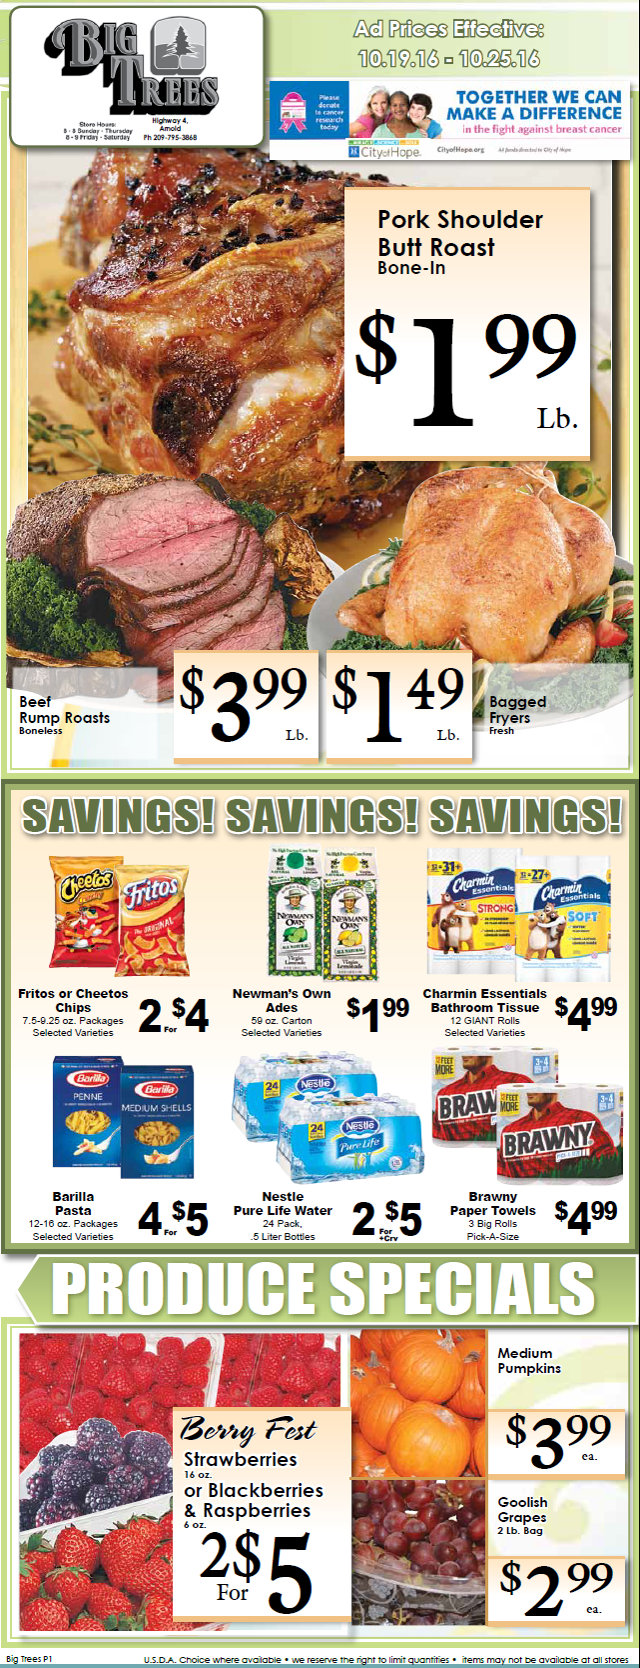 Big Trees Market Weekly Ad & Specials Through October 25th